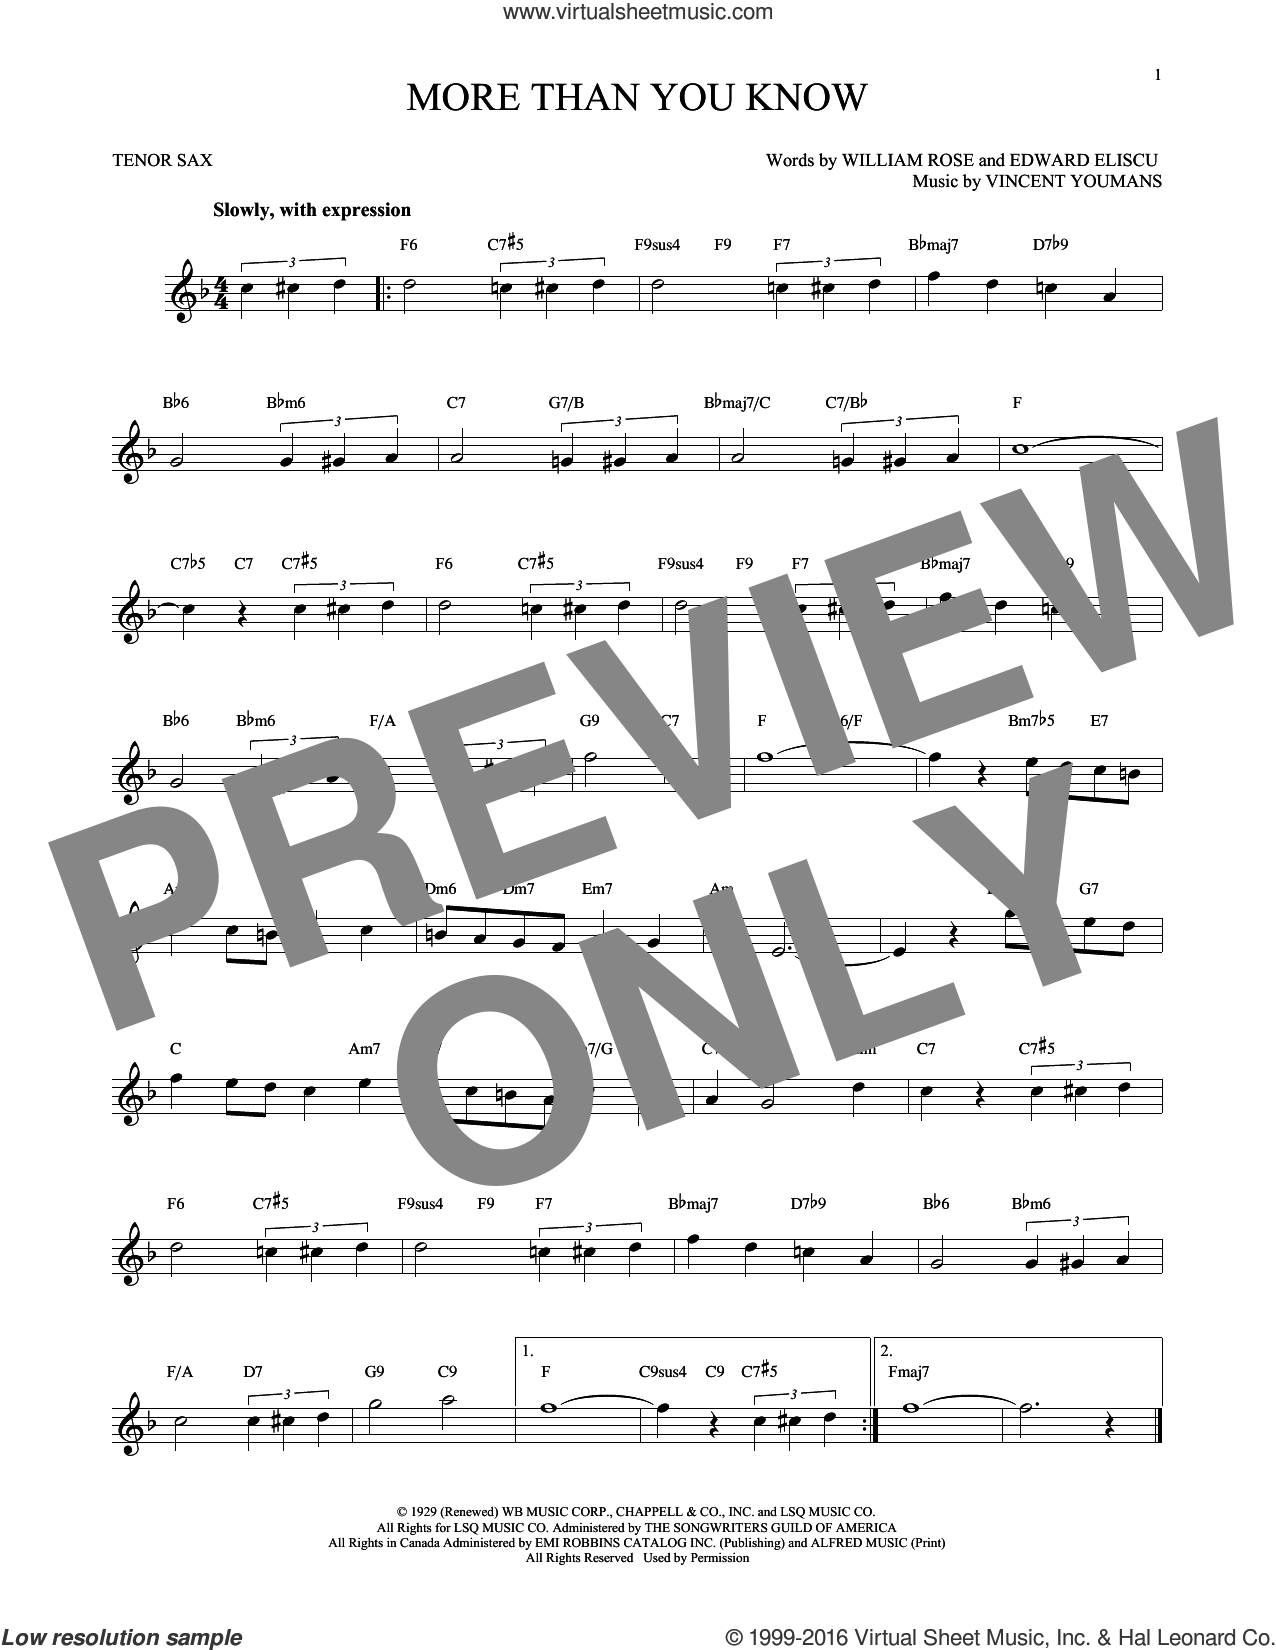 More Than You Know sheet music for tenor saxophone solo by Vincent Youmans, Edward Eliscu and William Rose. Score Image Preview.